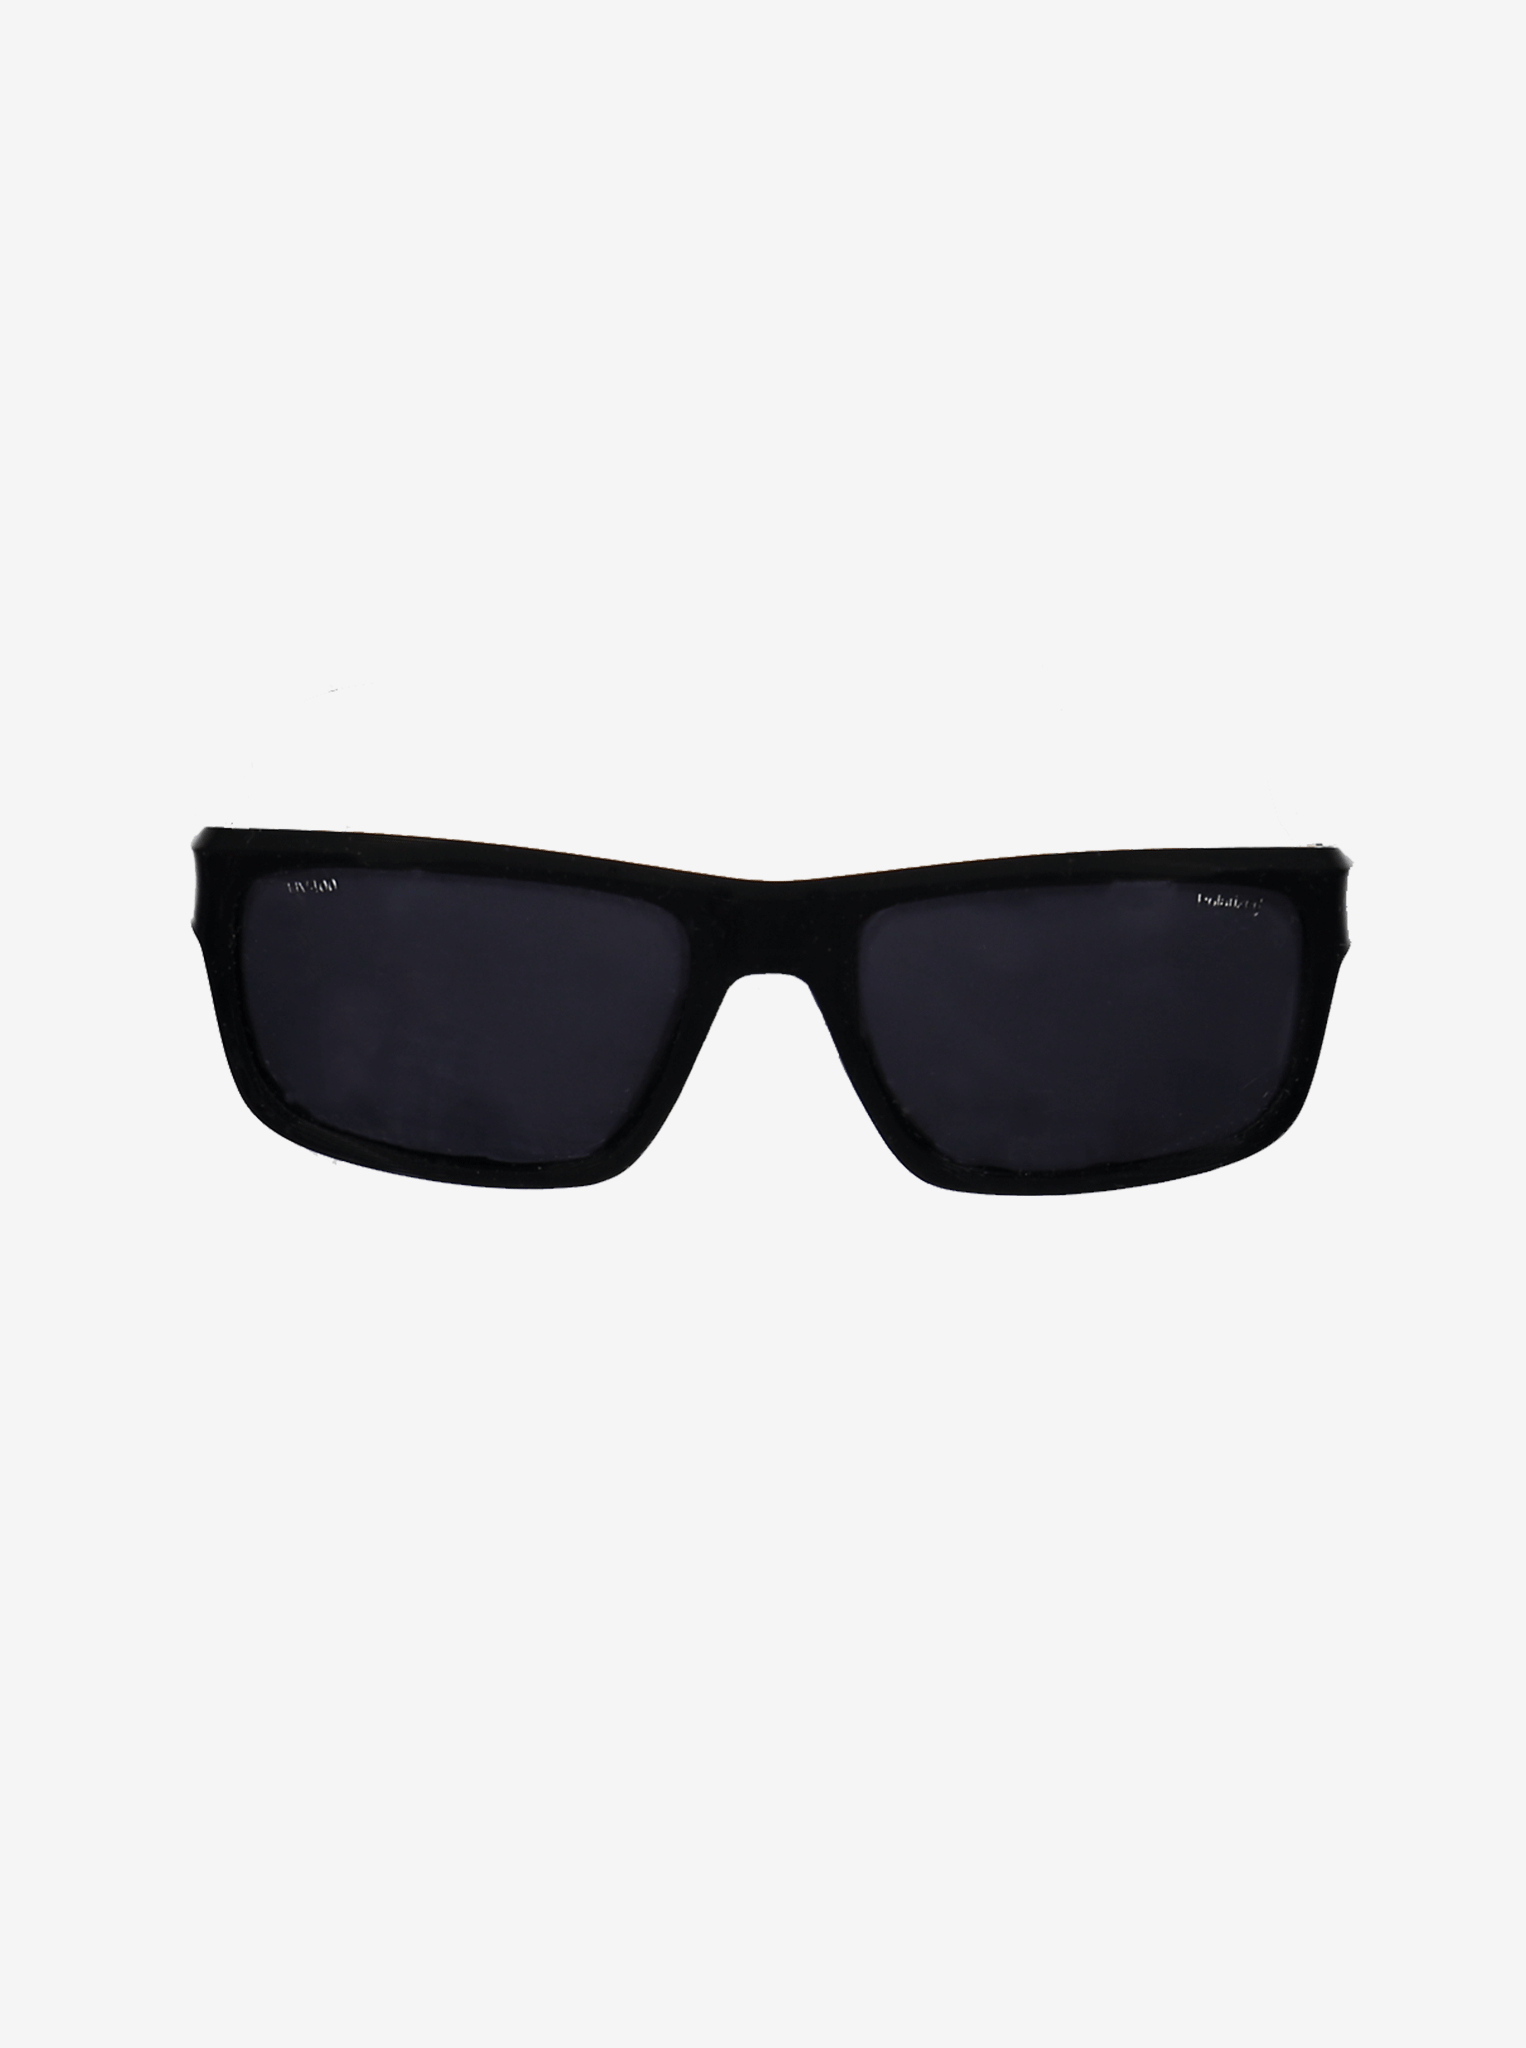 Kids UV Polarized Sunglasses 2-6Y+---Black---Unisex---2-6y